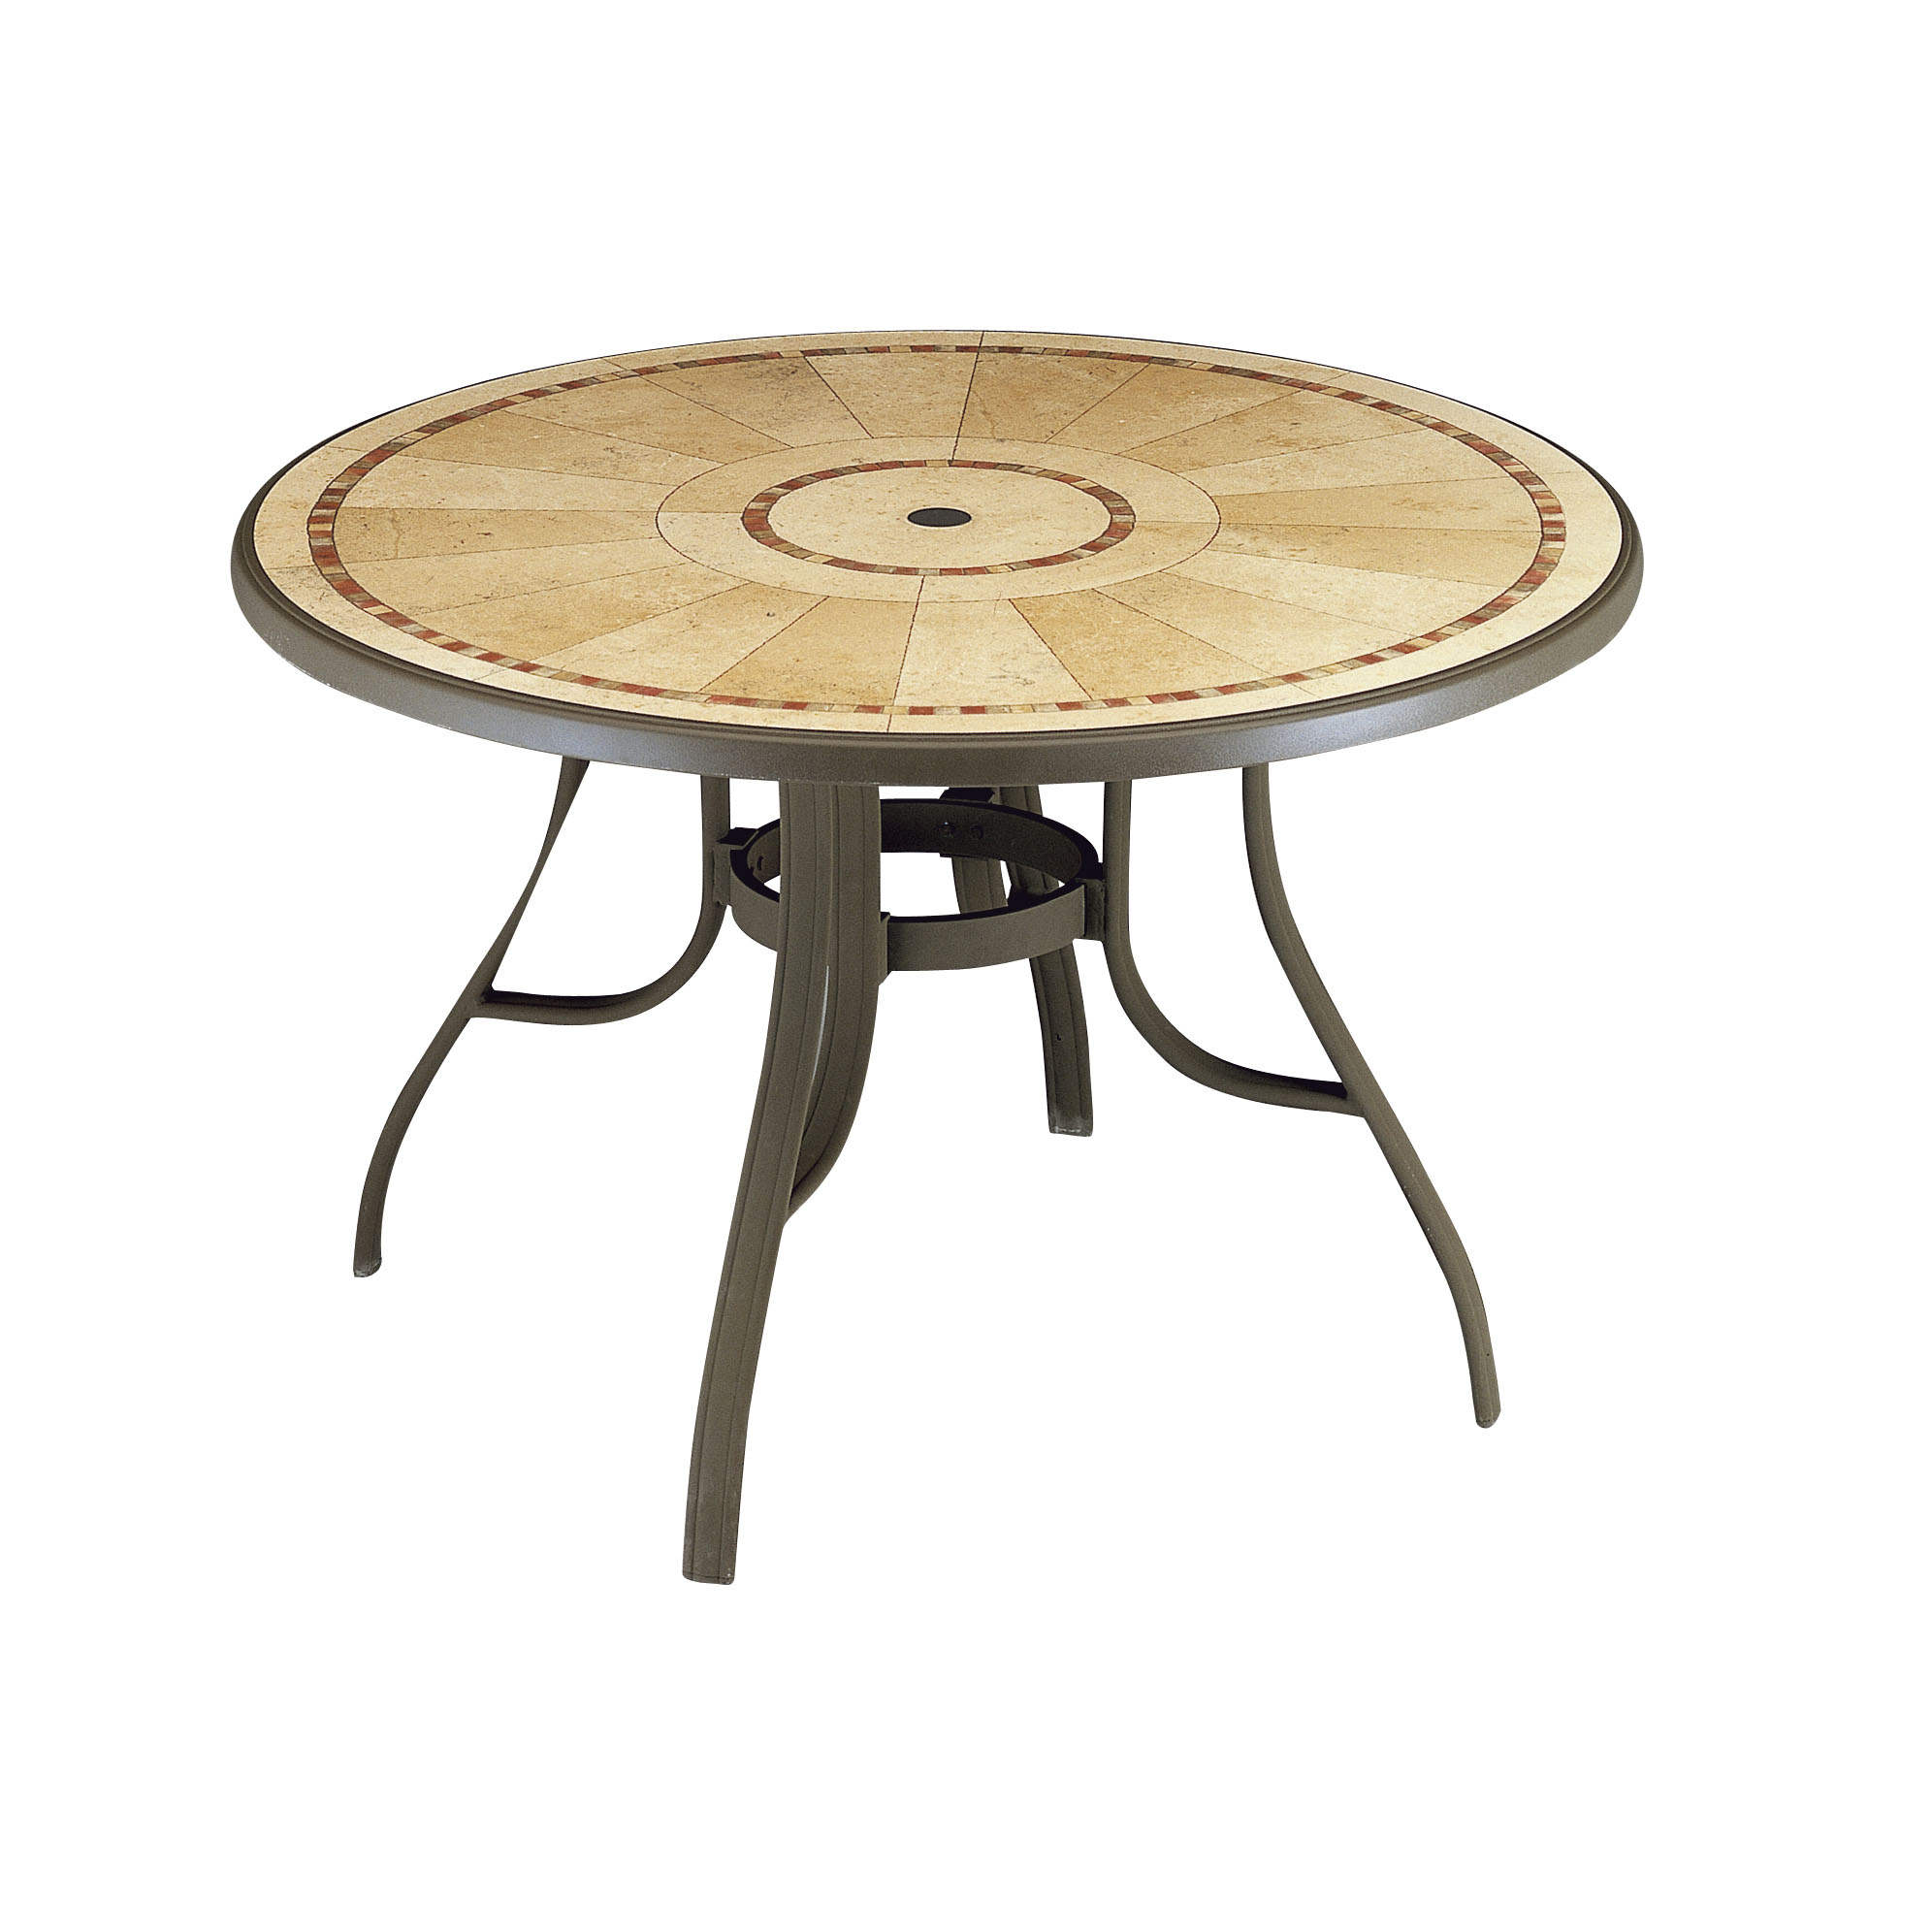 "Louisiana ""Pietra Decor"" 48 in Round Dining Table with Metal Legs"